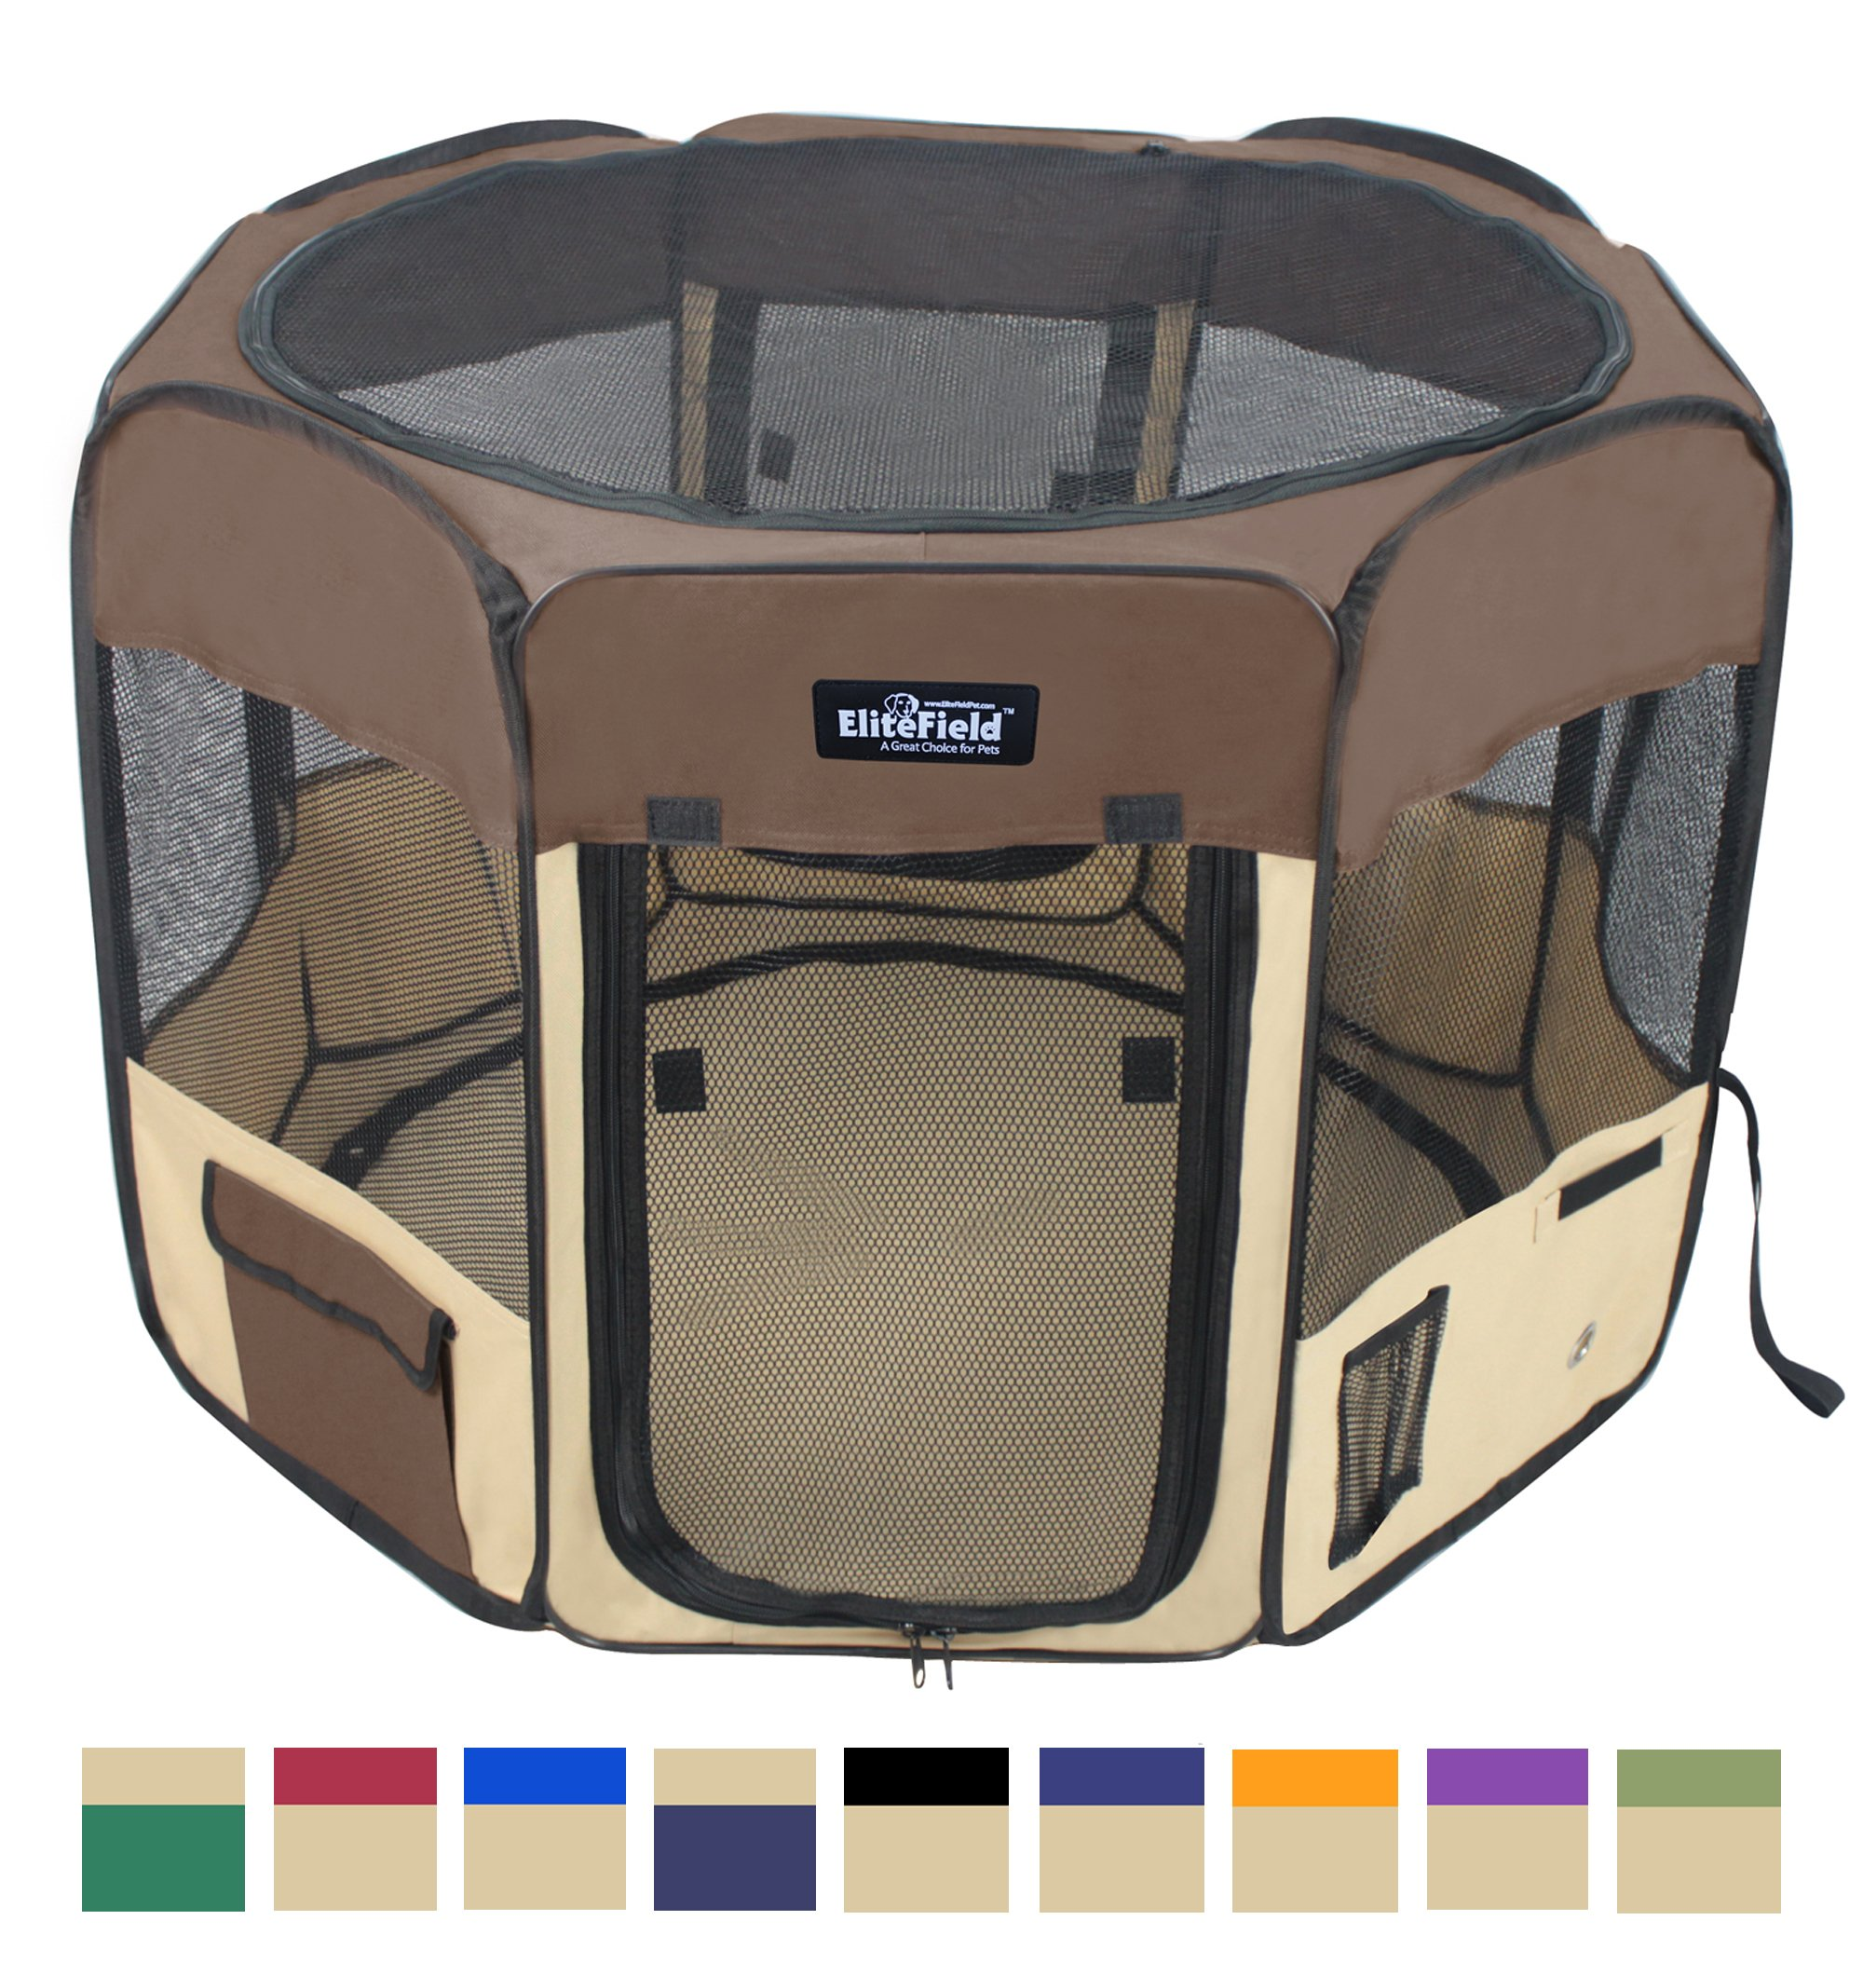 EliteField 2-Door Soft Pet Playpen, Exercise Pen, Multiple Sizes and Colors Available for Dogs, Cats and Other Pets (48'' x 48'' x 32''H, Brown+Beige)